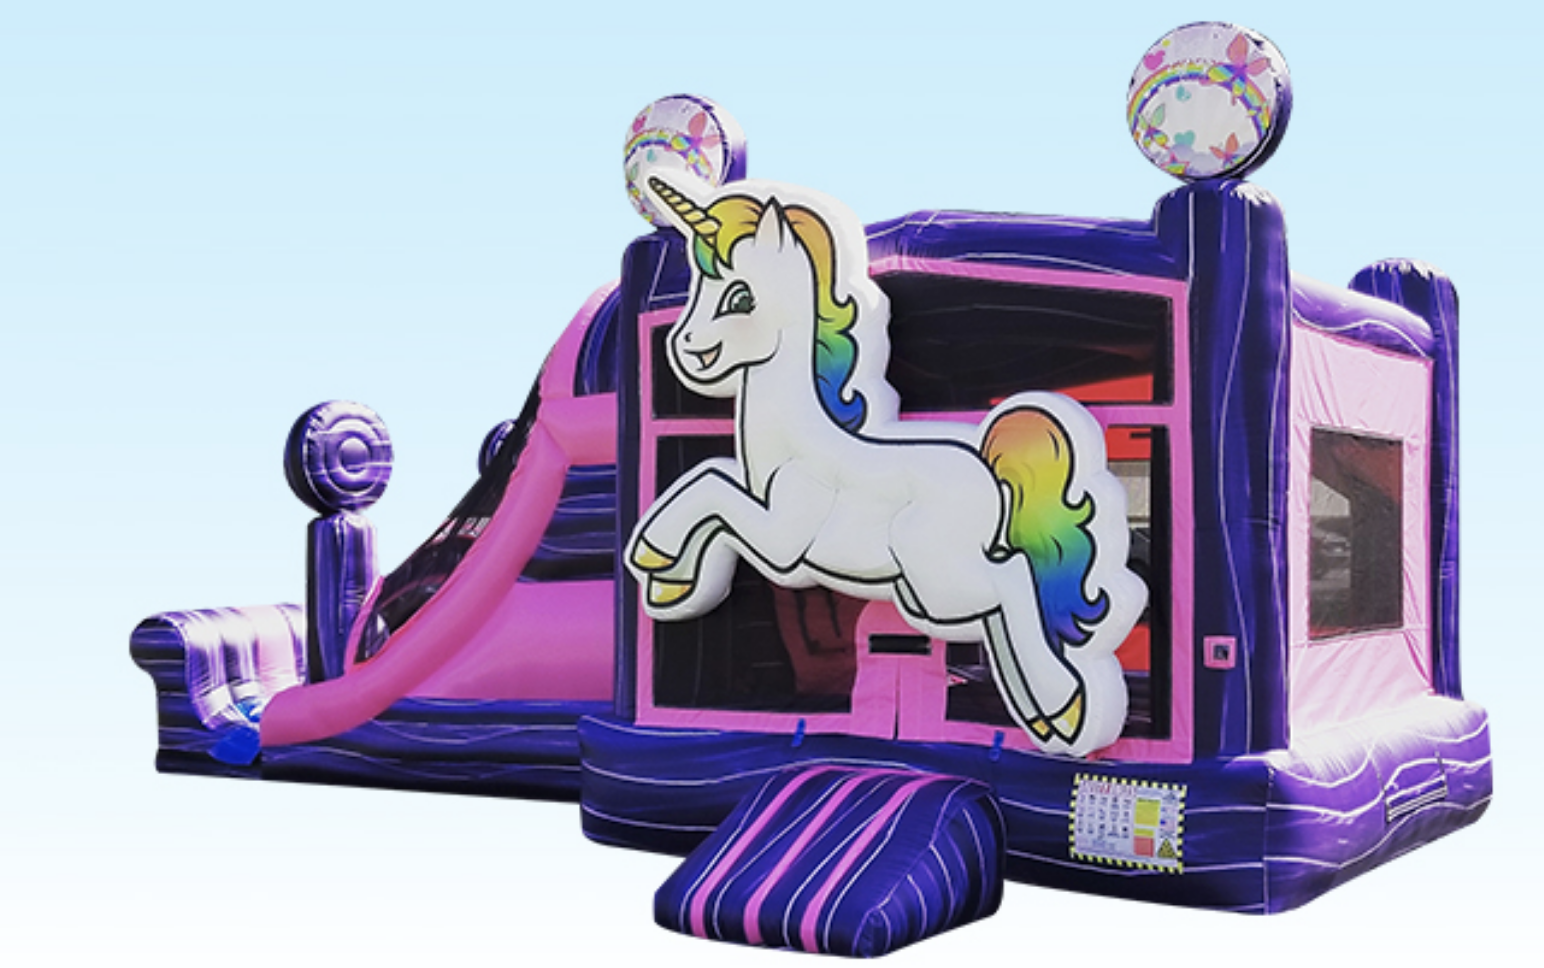 Milwaukee, Madison, Pewaukee, Brookfield, Mequon, Cedarburg, Fox Point, Bayside, Muskego Unicorn Bounce House Combo Rental